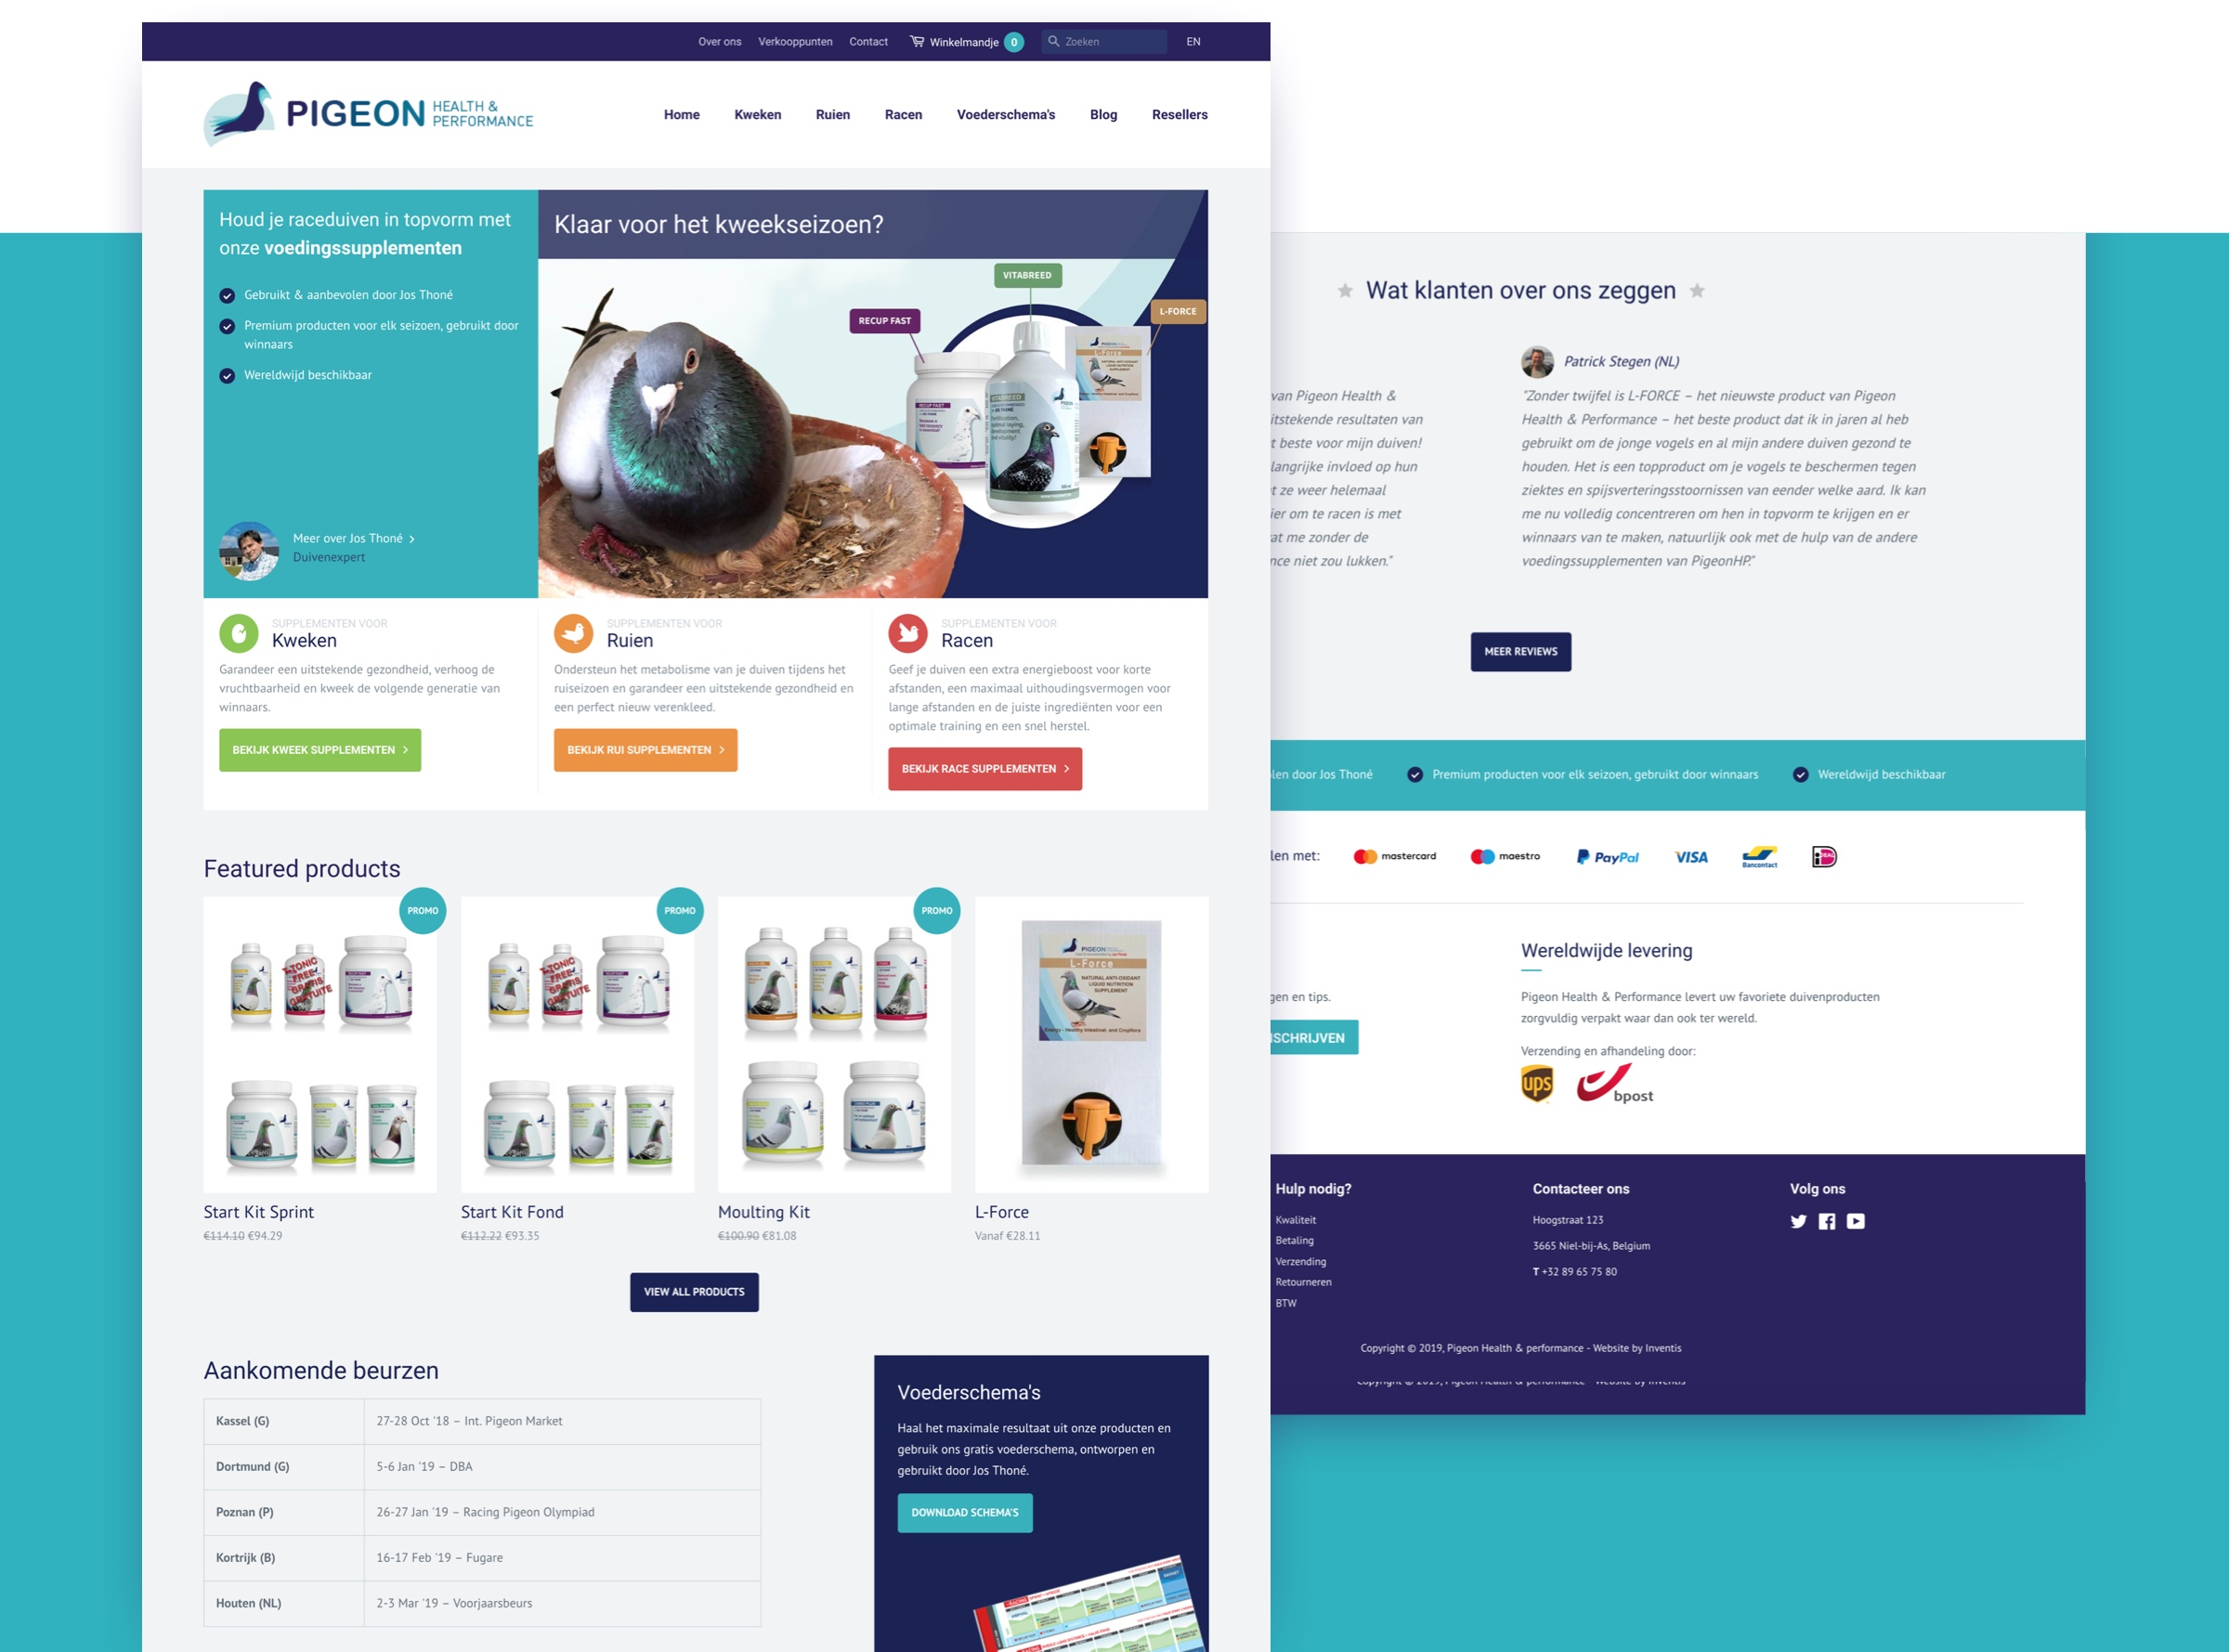 Filling image about Pigeon website